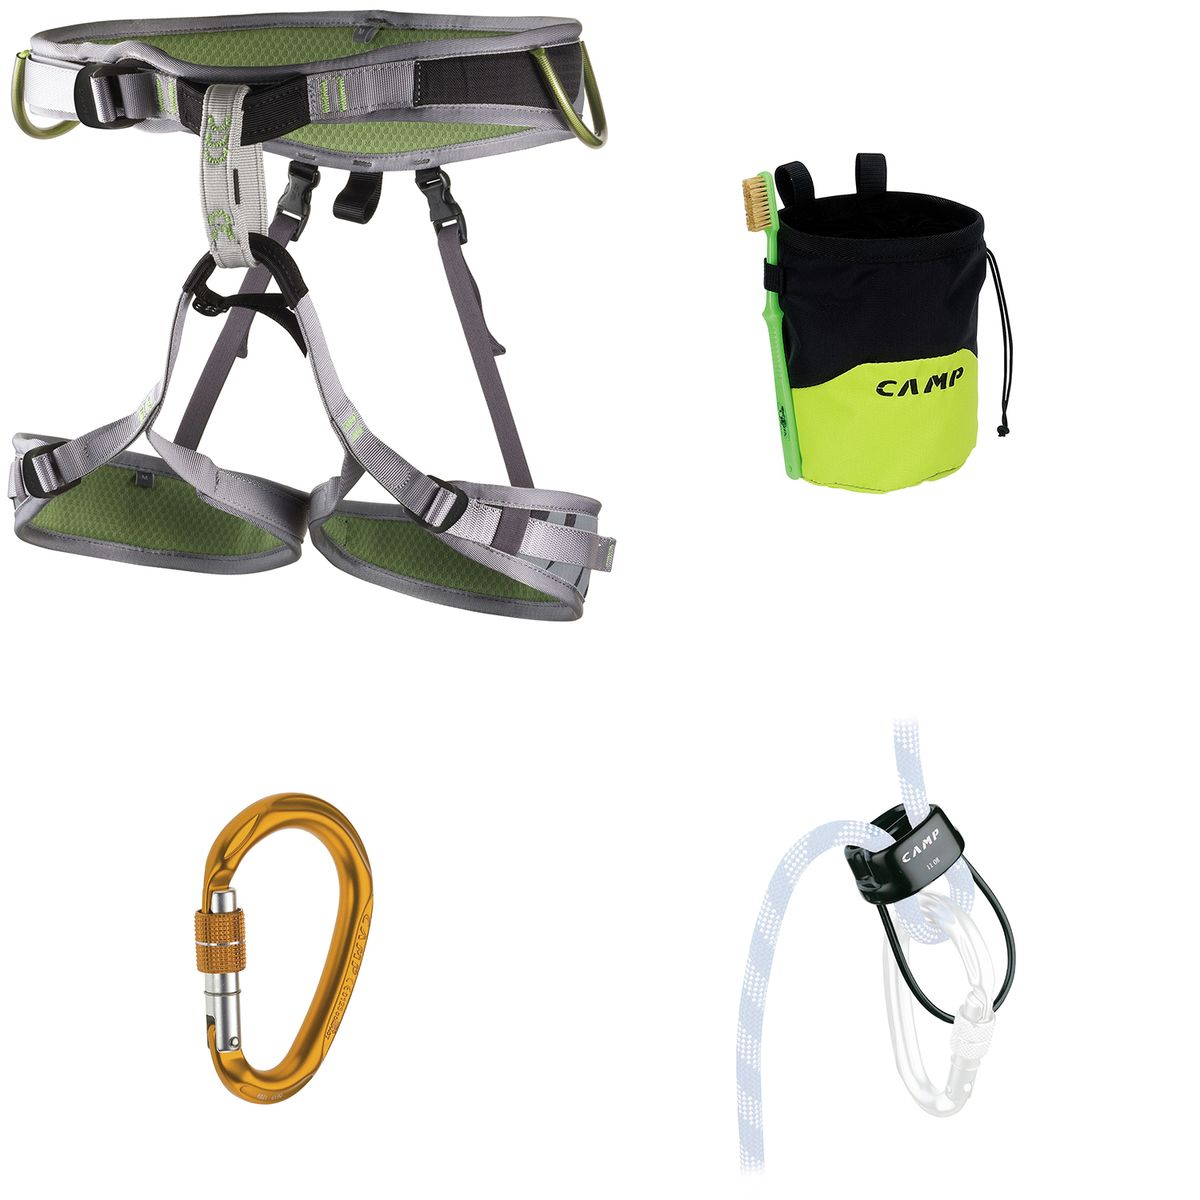 Harness Climbing Packages Examined | WeighMyRack Blog